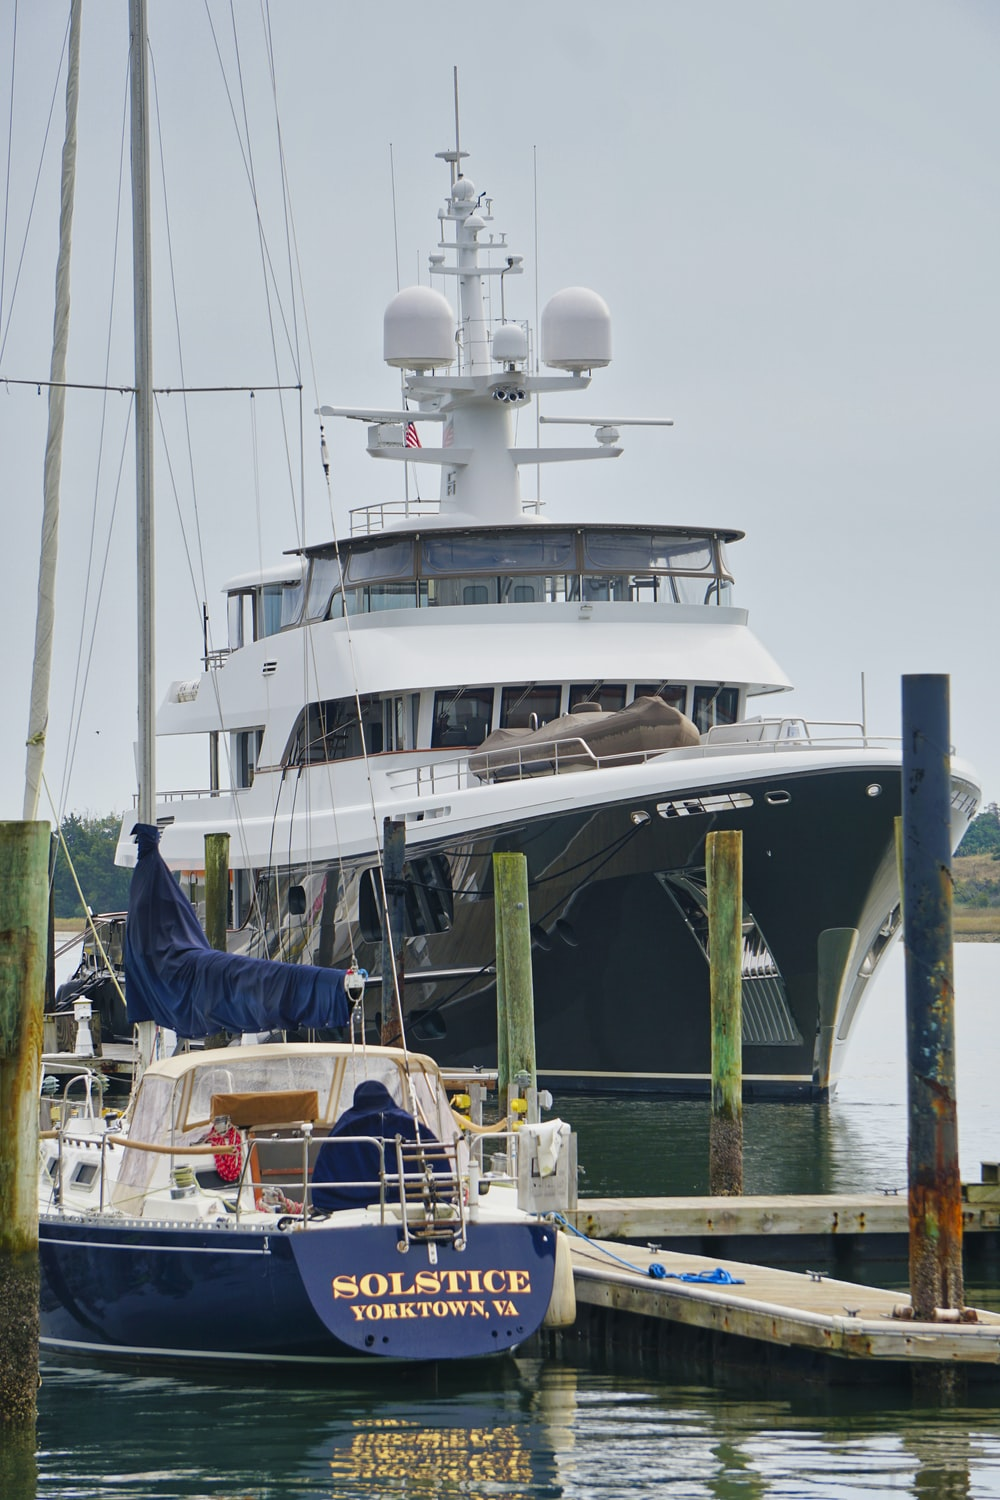 white and blue yacht on dock during daytime